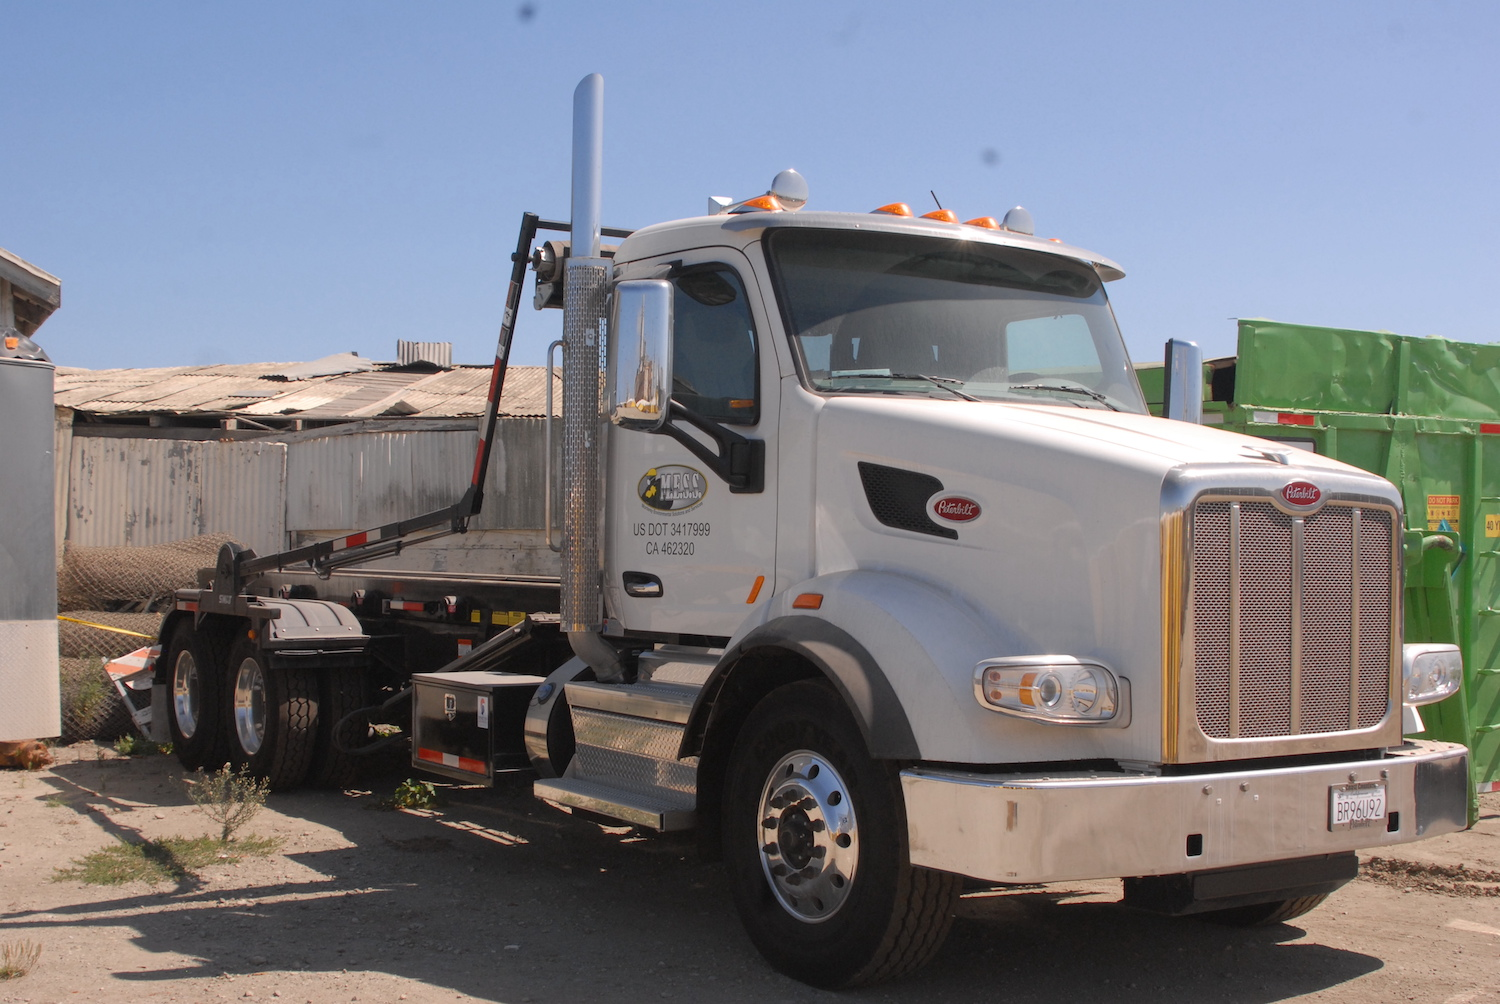 MESS Clean Up Peterbilt truck. Serving California's Central Coast with Asbestos, Mold, Lead, and Selective Demolition. Property Managers example